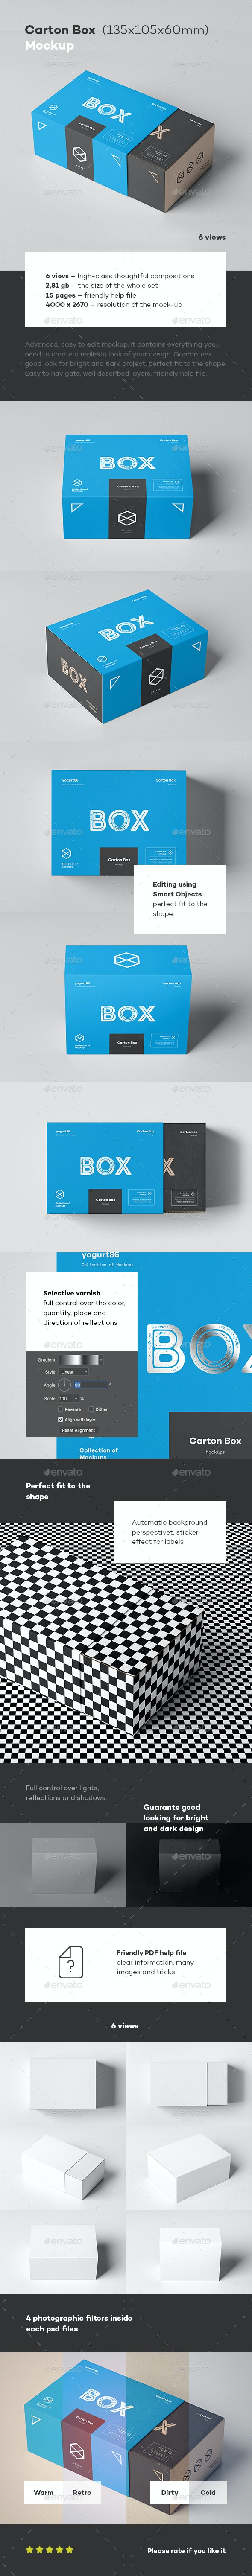 Carton Box Mock-up 135x105x60 & Wrapper - Miscellaneous Packaging